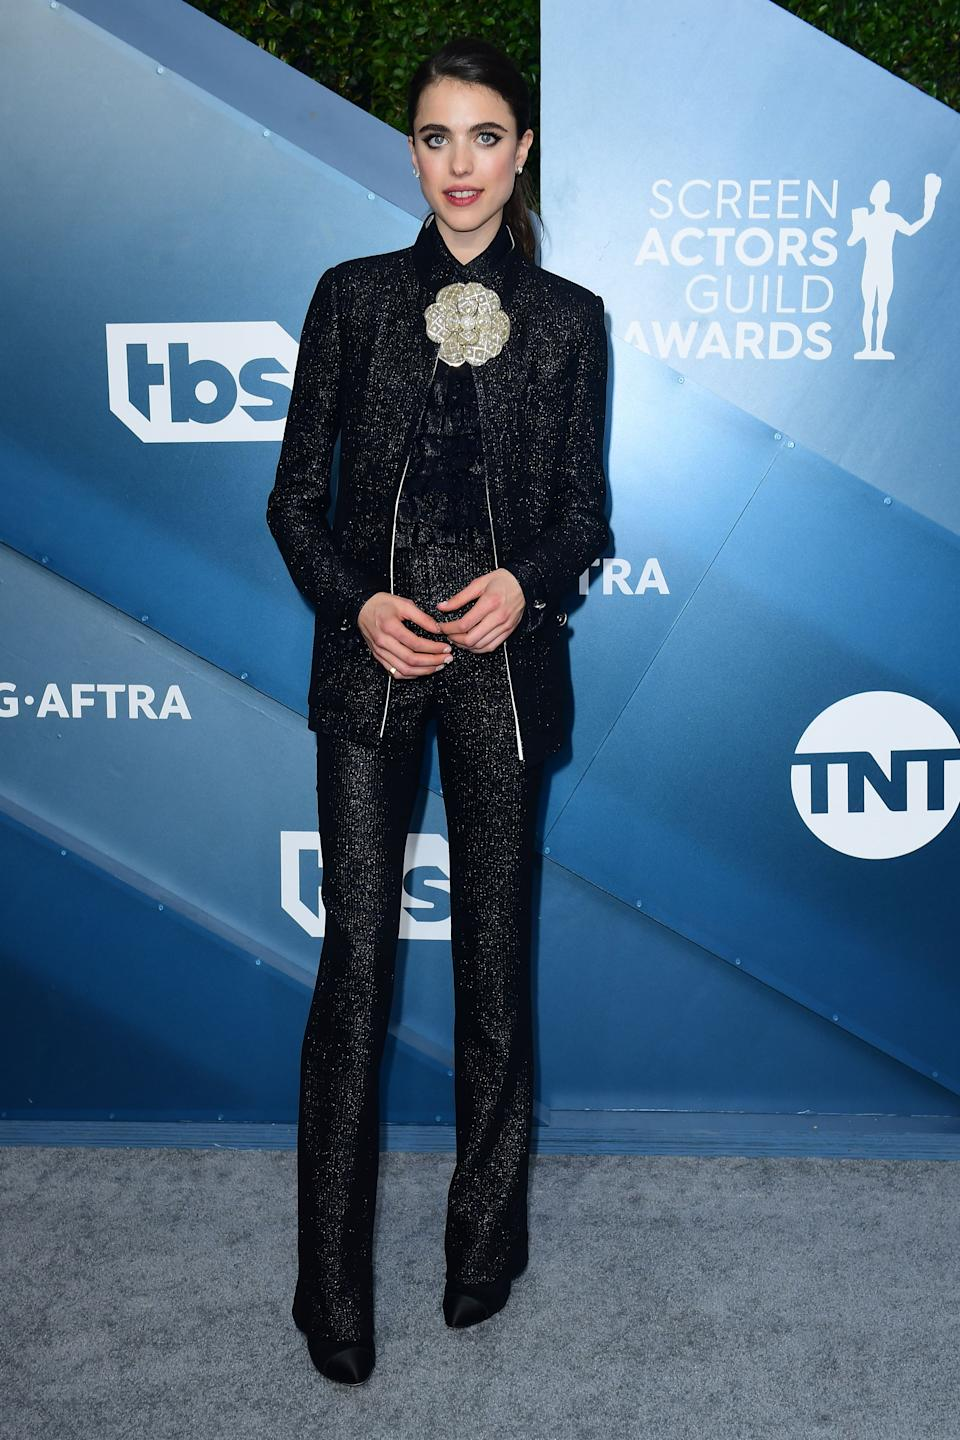 <h2>Margaret Qualley in Chanel</h2><br>Margaret Qualley's shimmering Chanel suit is everything we could've asked for, and more.